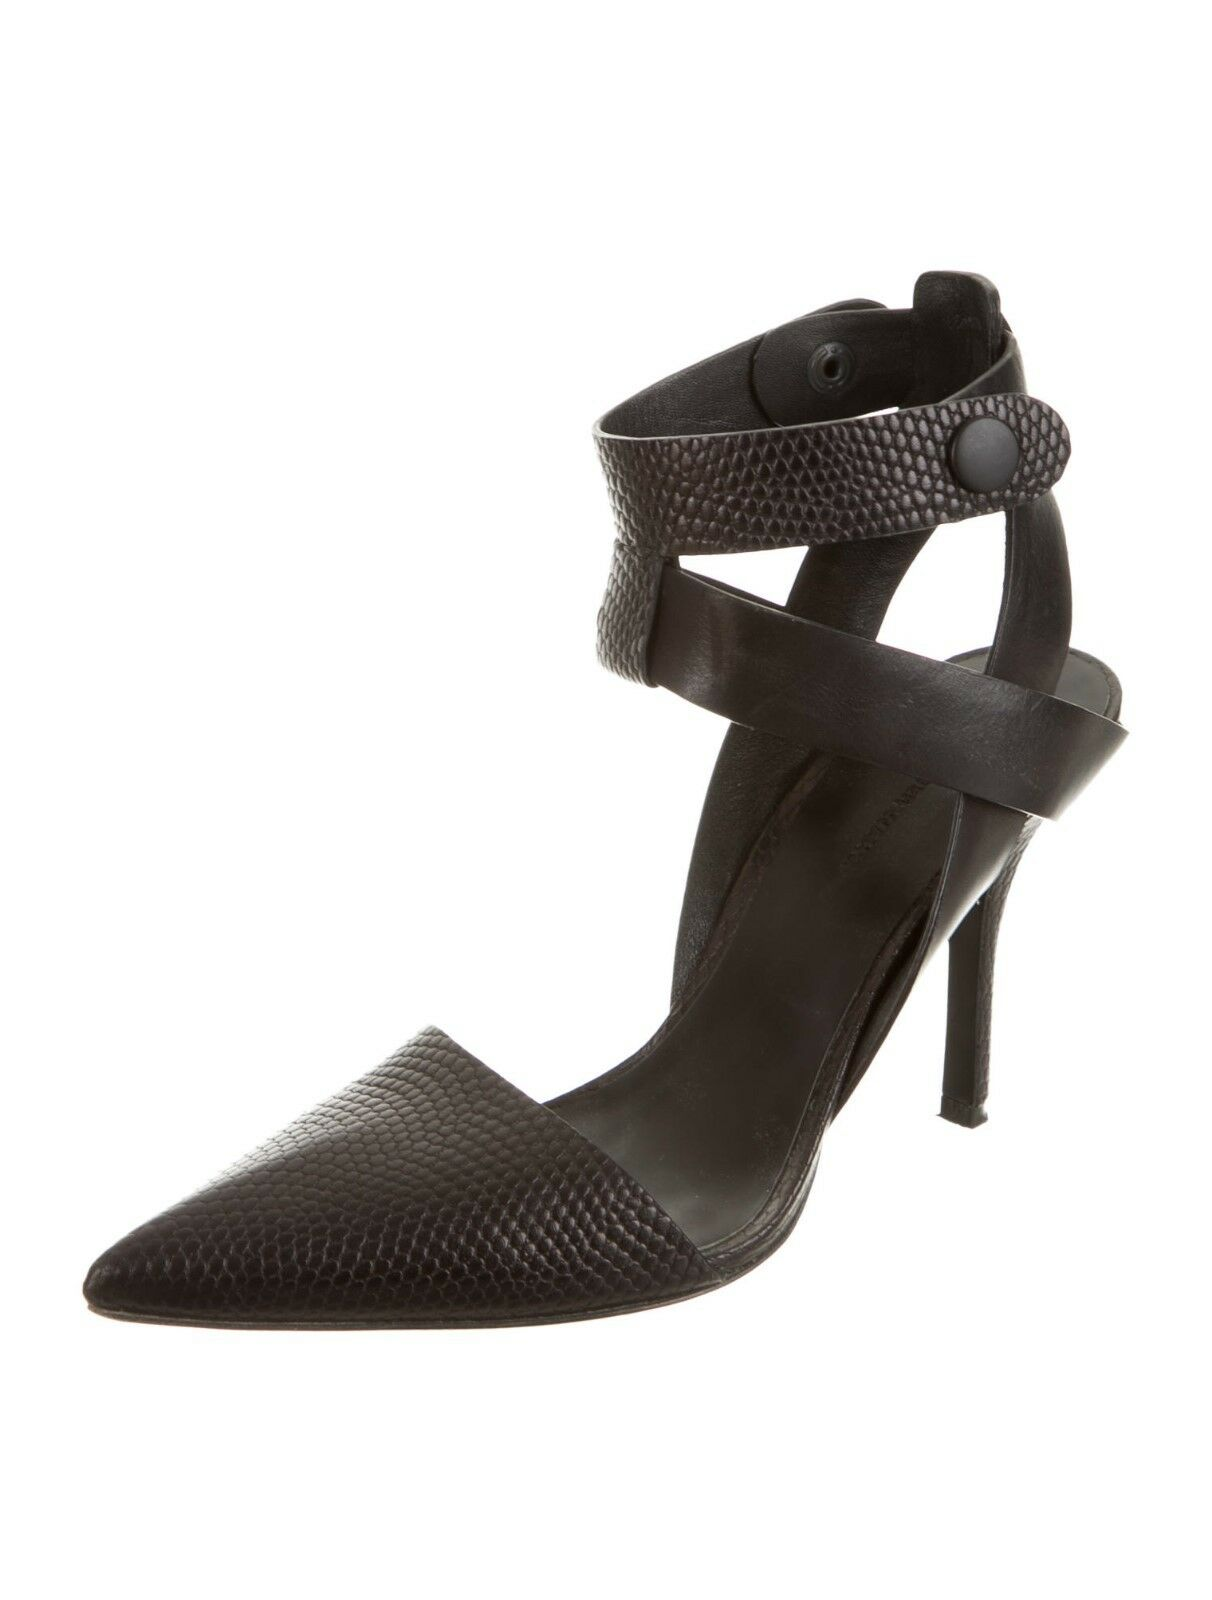 GORGEOUS NEW SOLD OUT  750 ALEXANDER WANG BLACK LEATHER HEELS